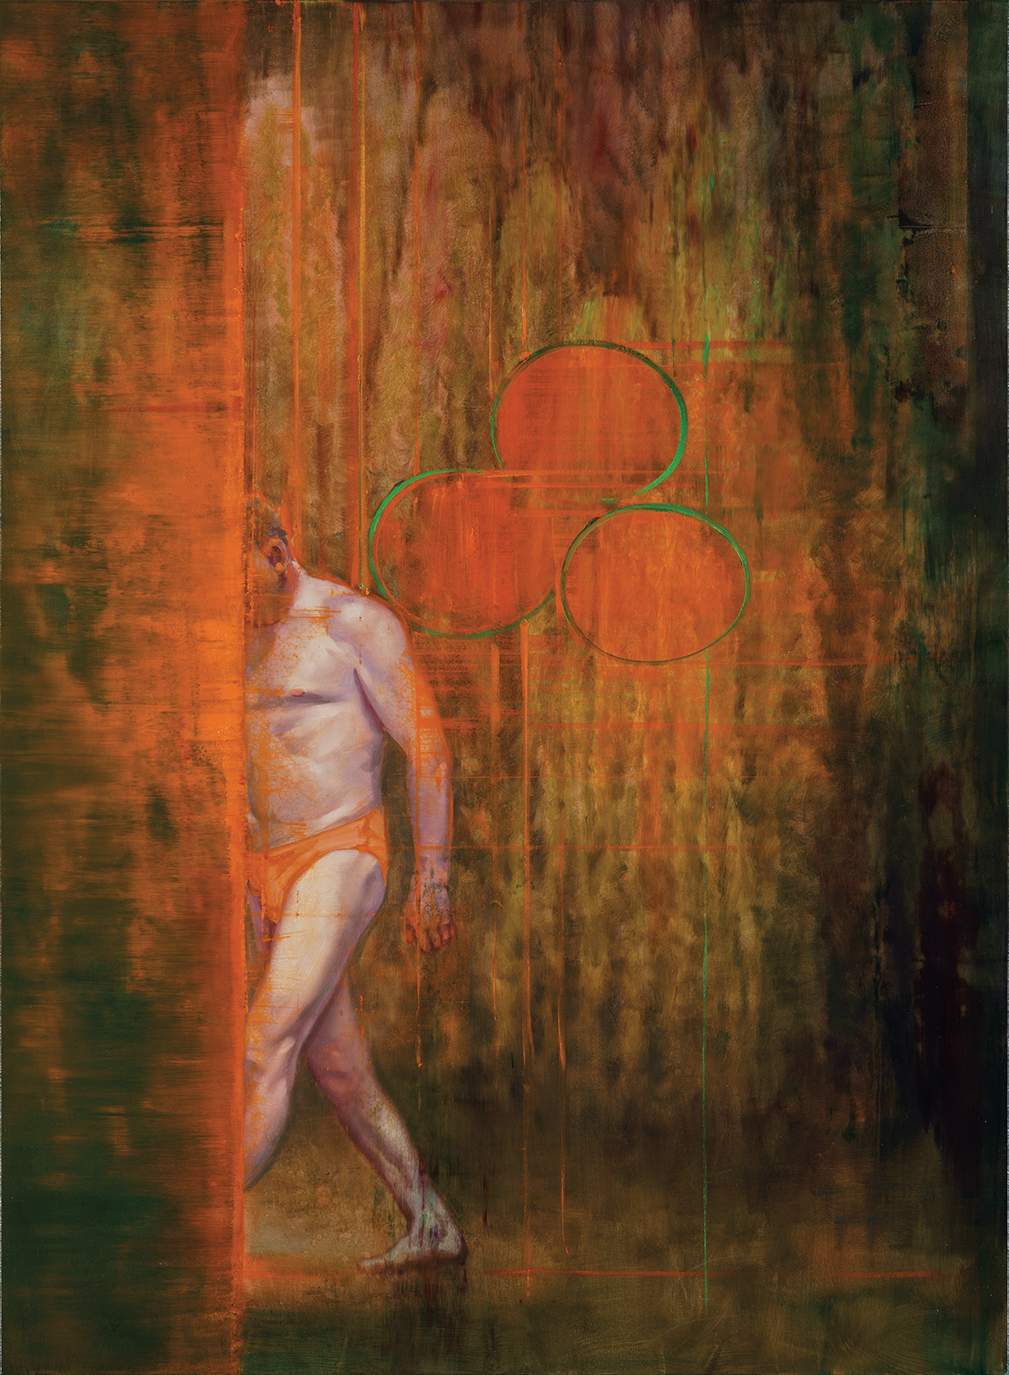 man is stepping into a  red vertical, oil on canvas 190x140cm. 2010-2020